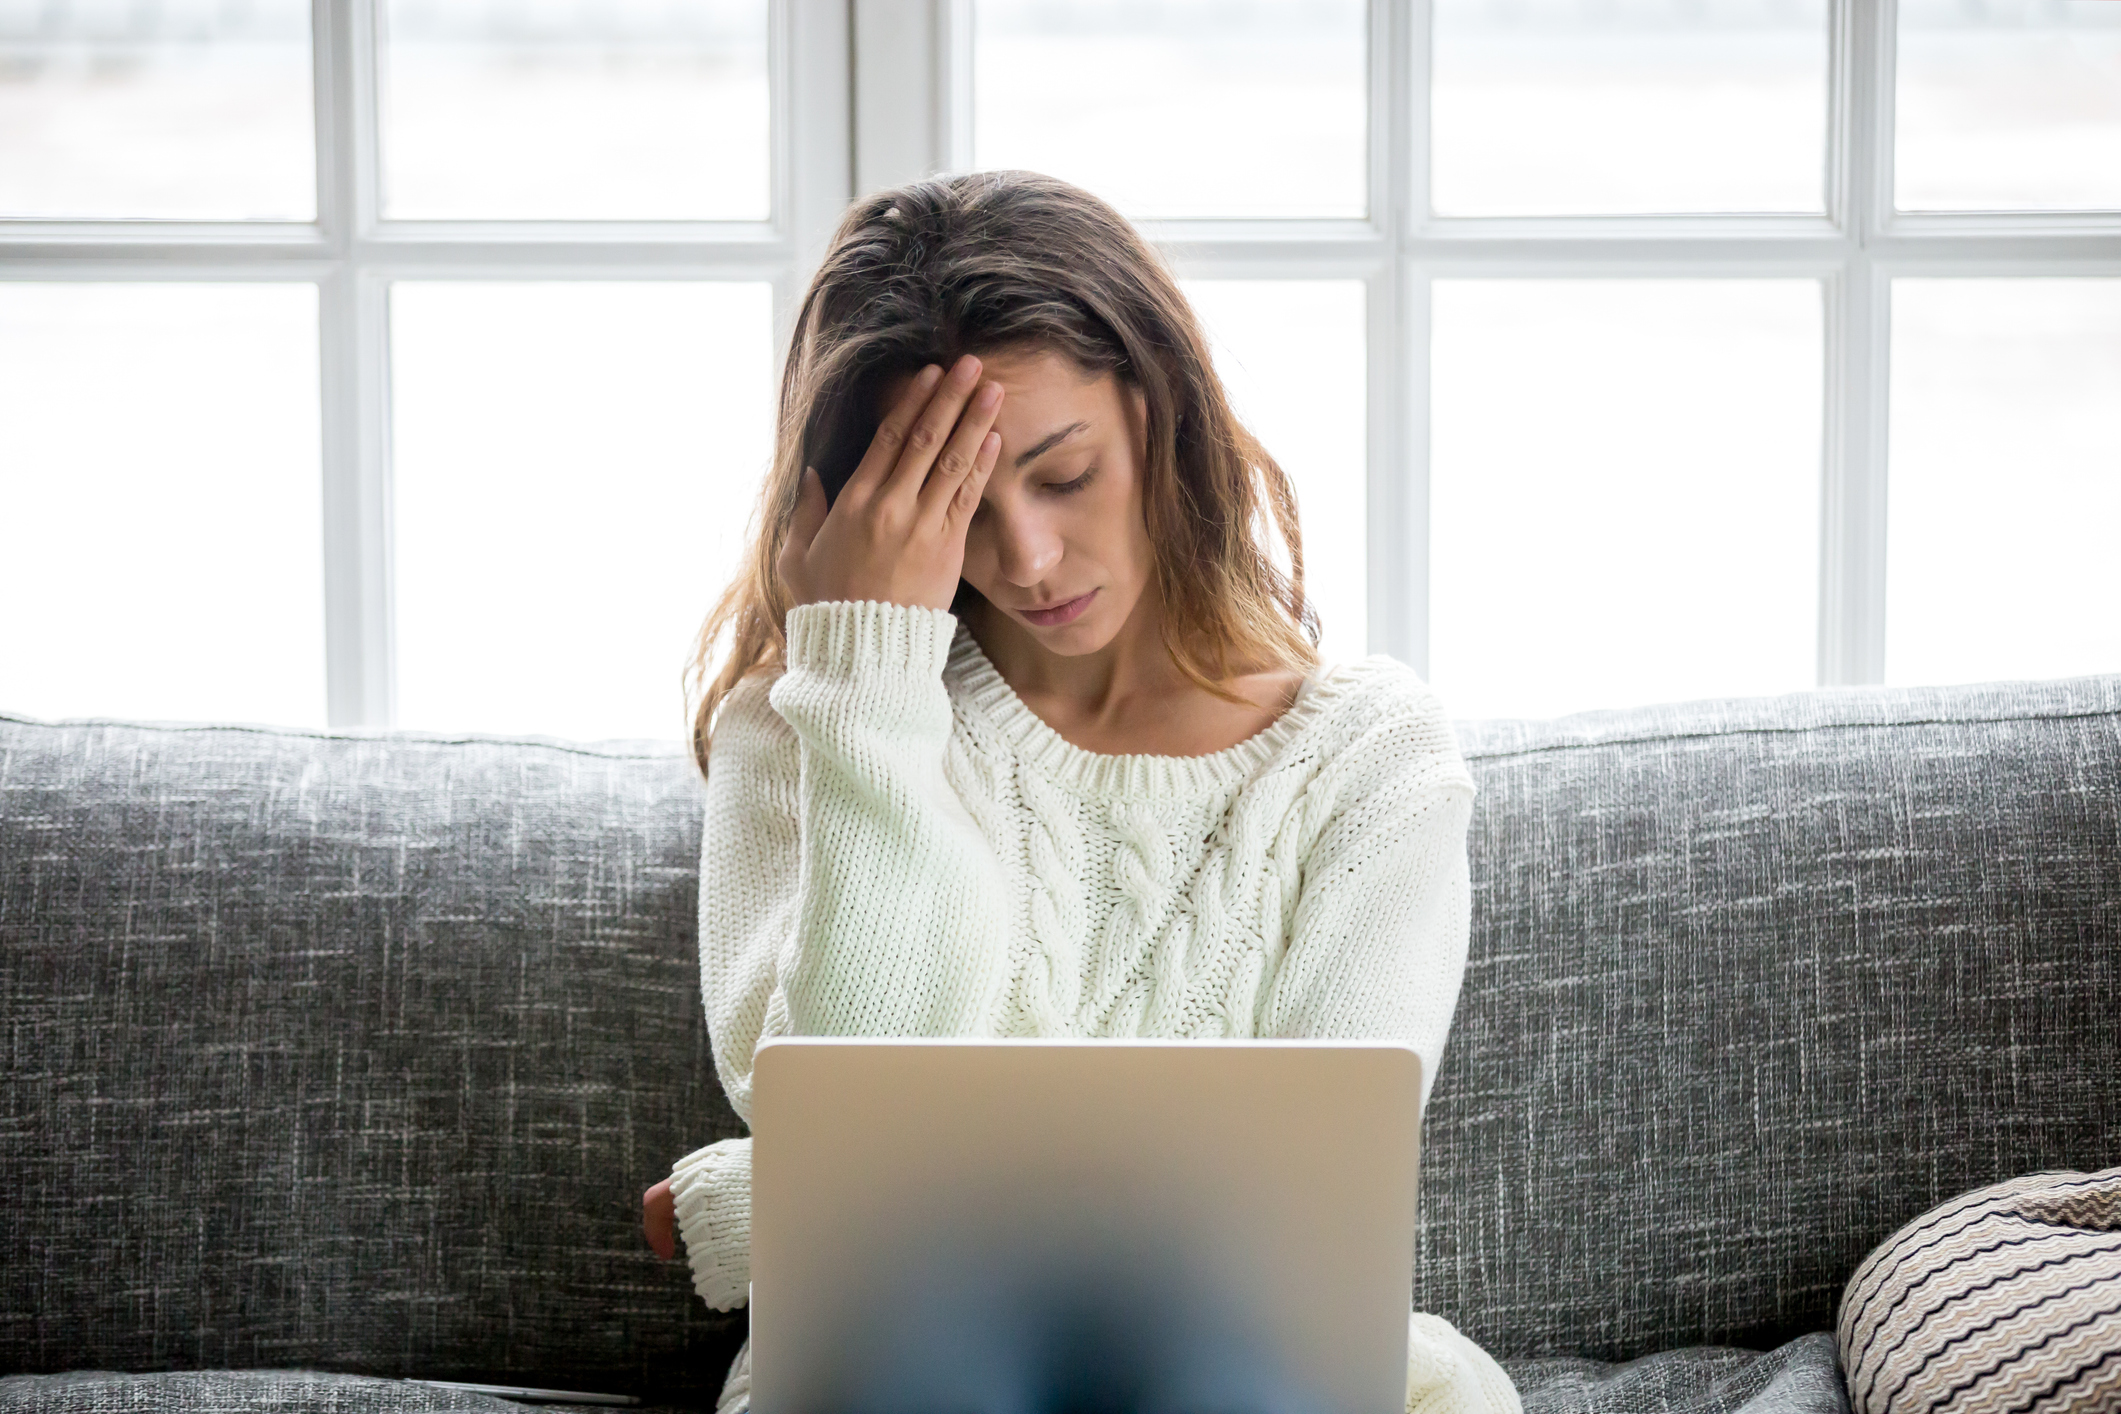 An upset woman on a couch staring at a laptop.